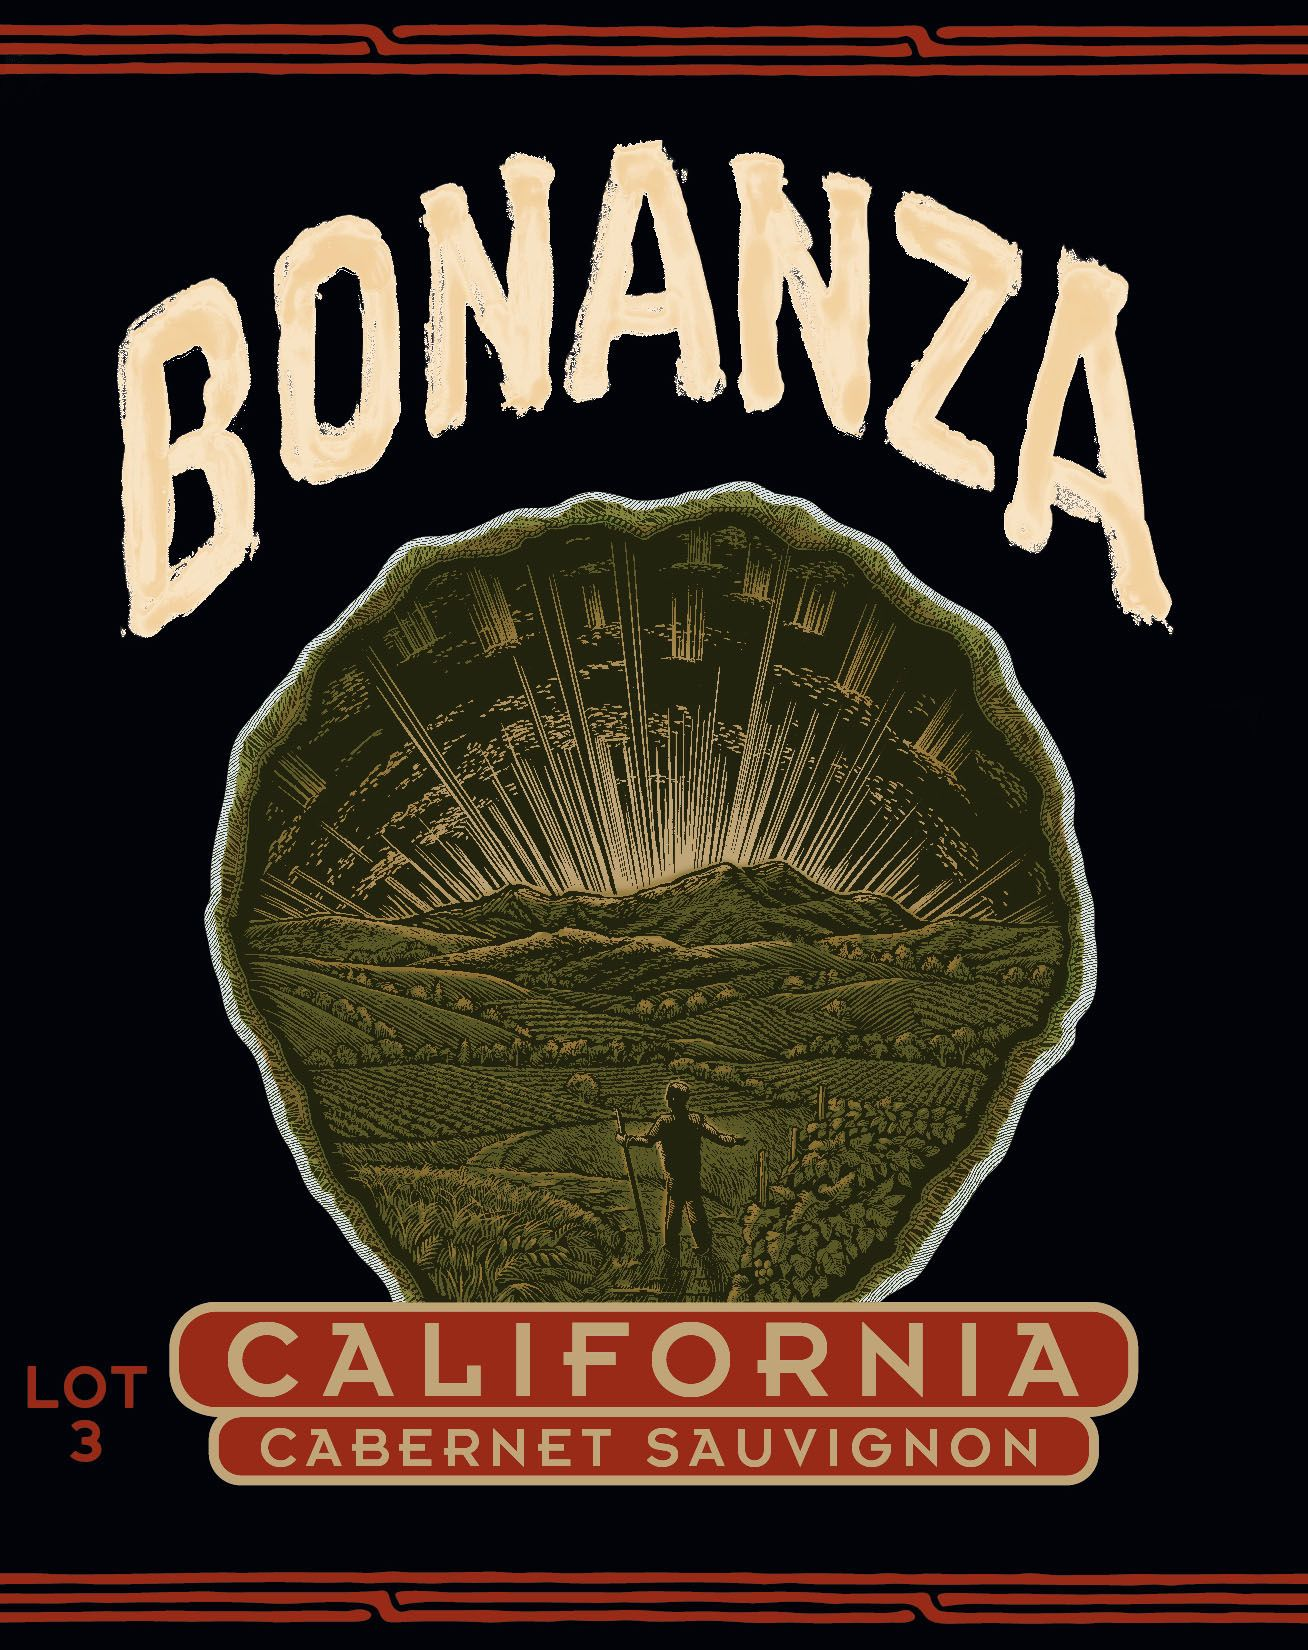 Bonanza by Chuck Wagner California Cabernet Sauvignon Lot 3  Front Label